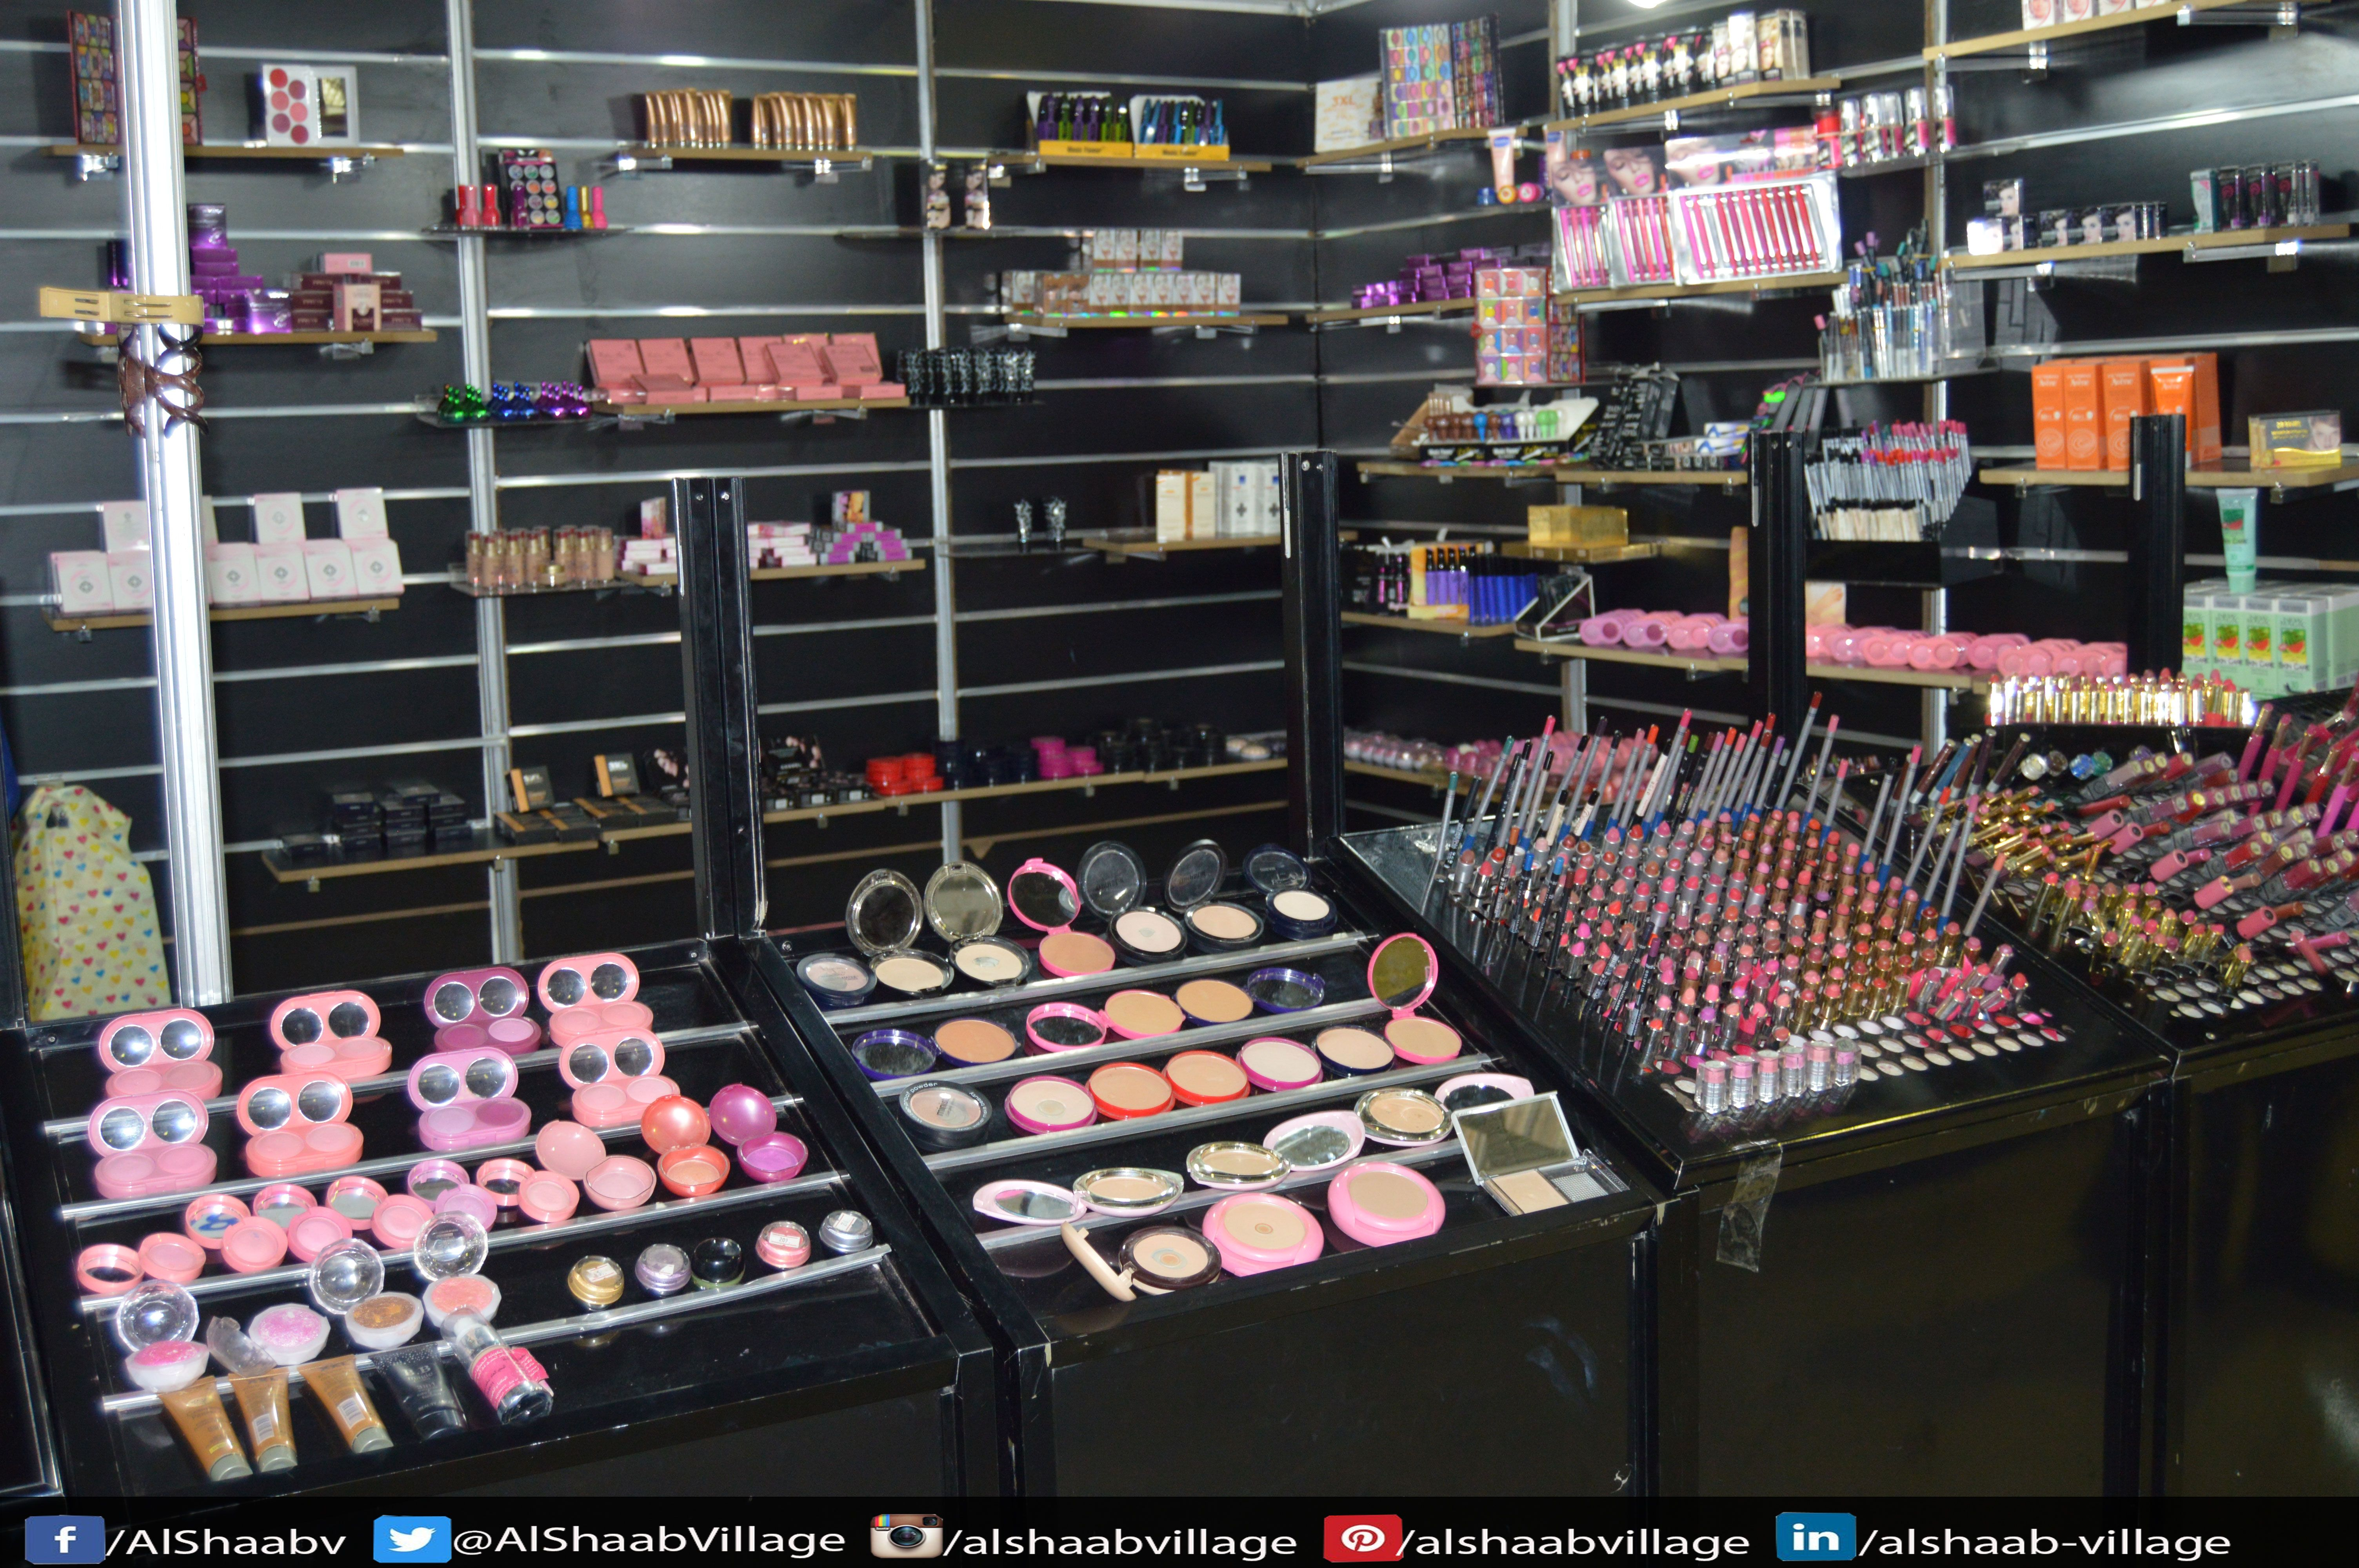 Women Loves The Confidence That Makeup Gives Them Shop With Us At Various Stores In Al Shaab Village يحب النساء الثقة Traditional Dresses Shopping Perfume